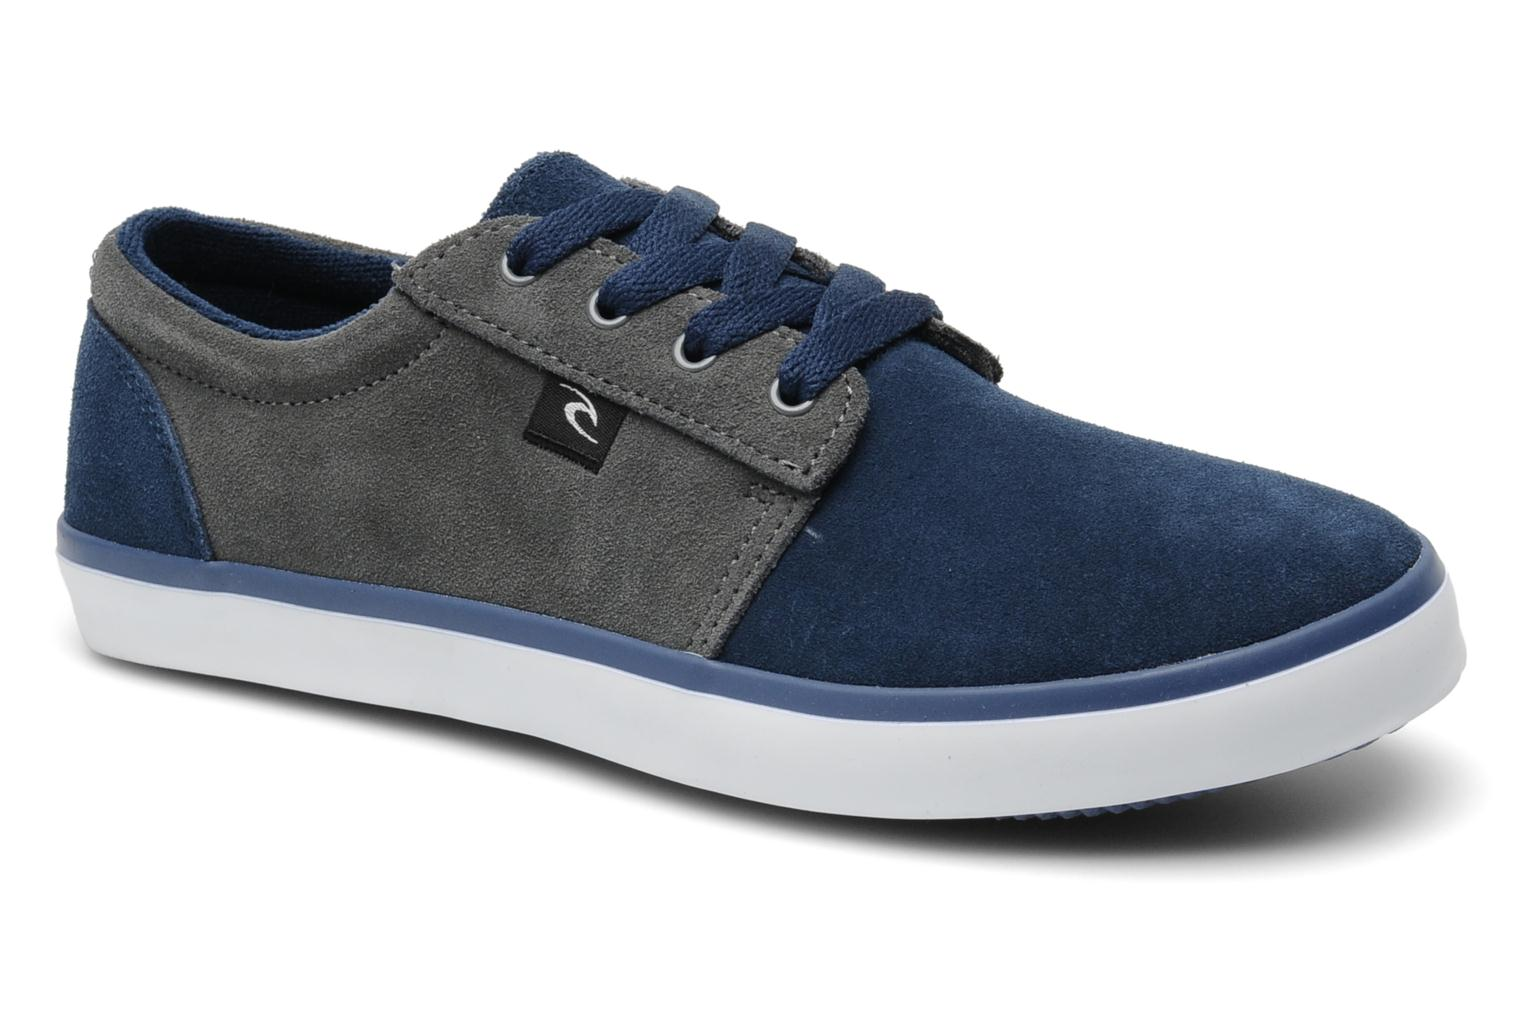 Sneakers Upgrade Kids by Rip Curl